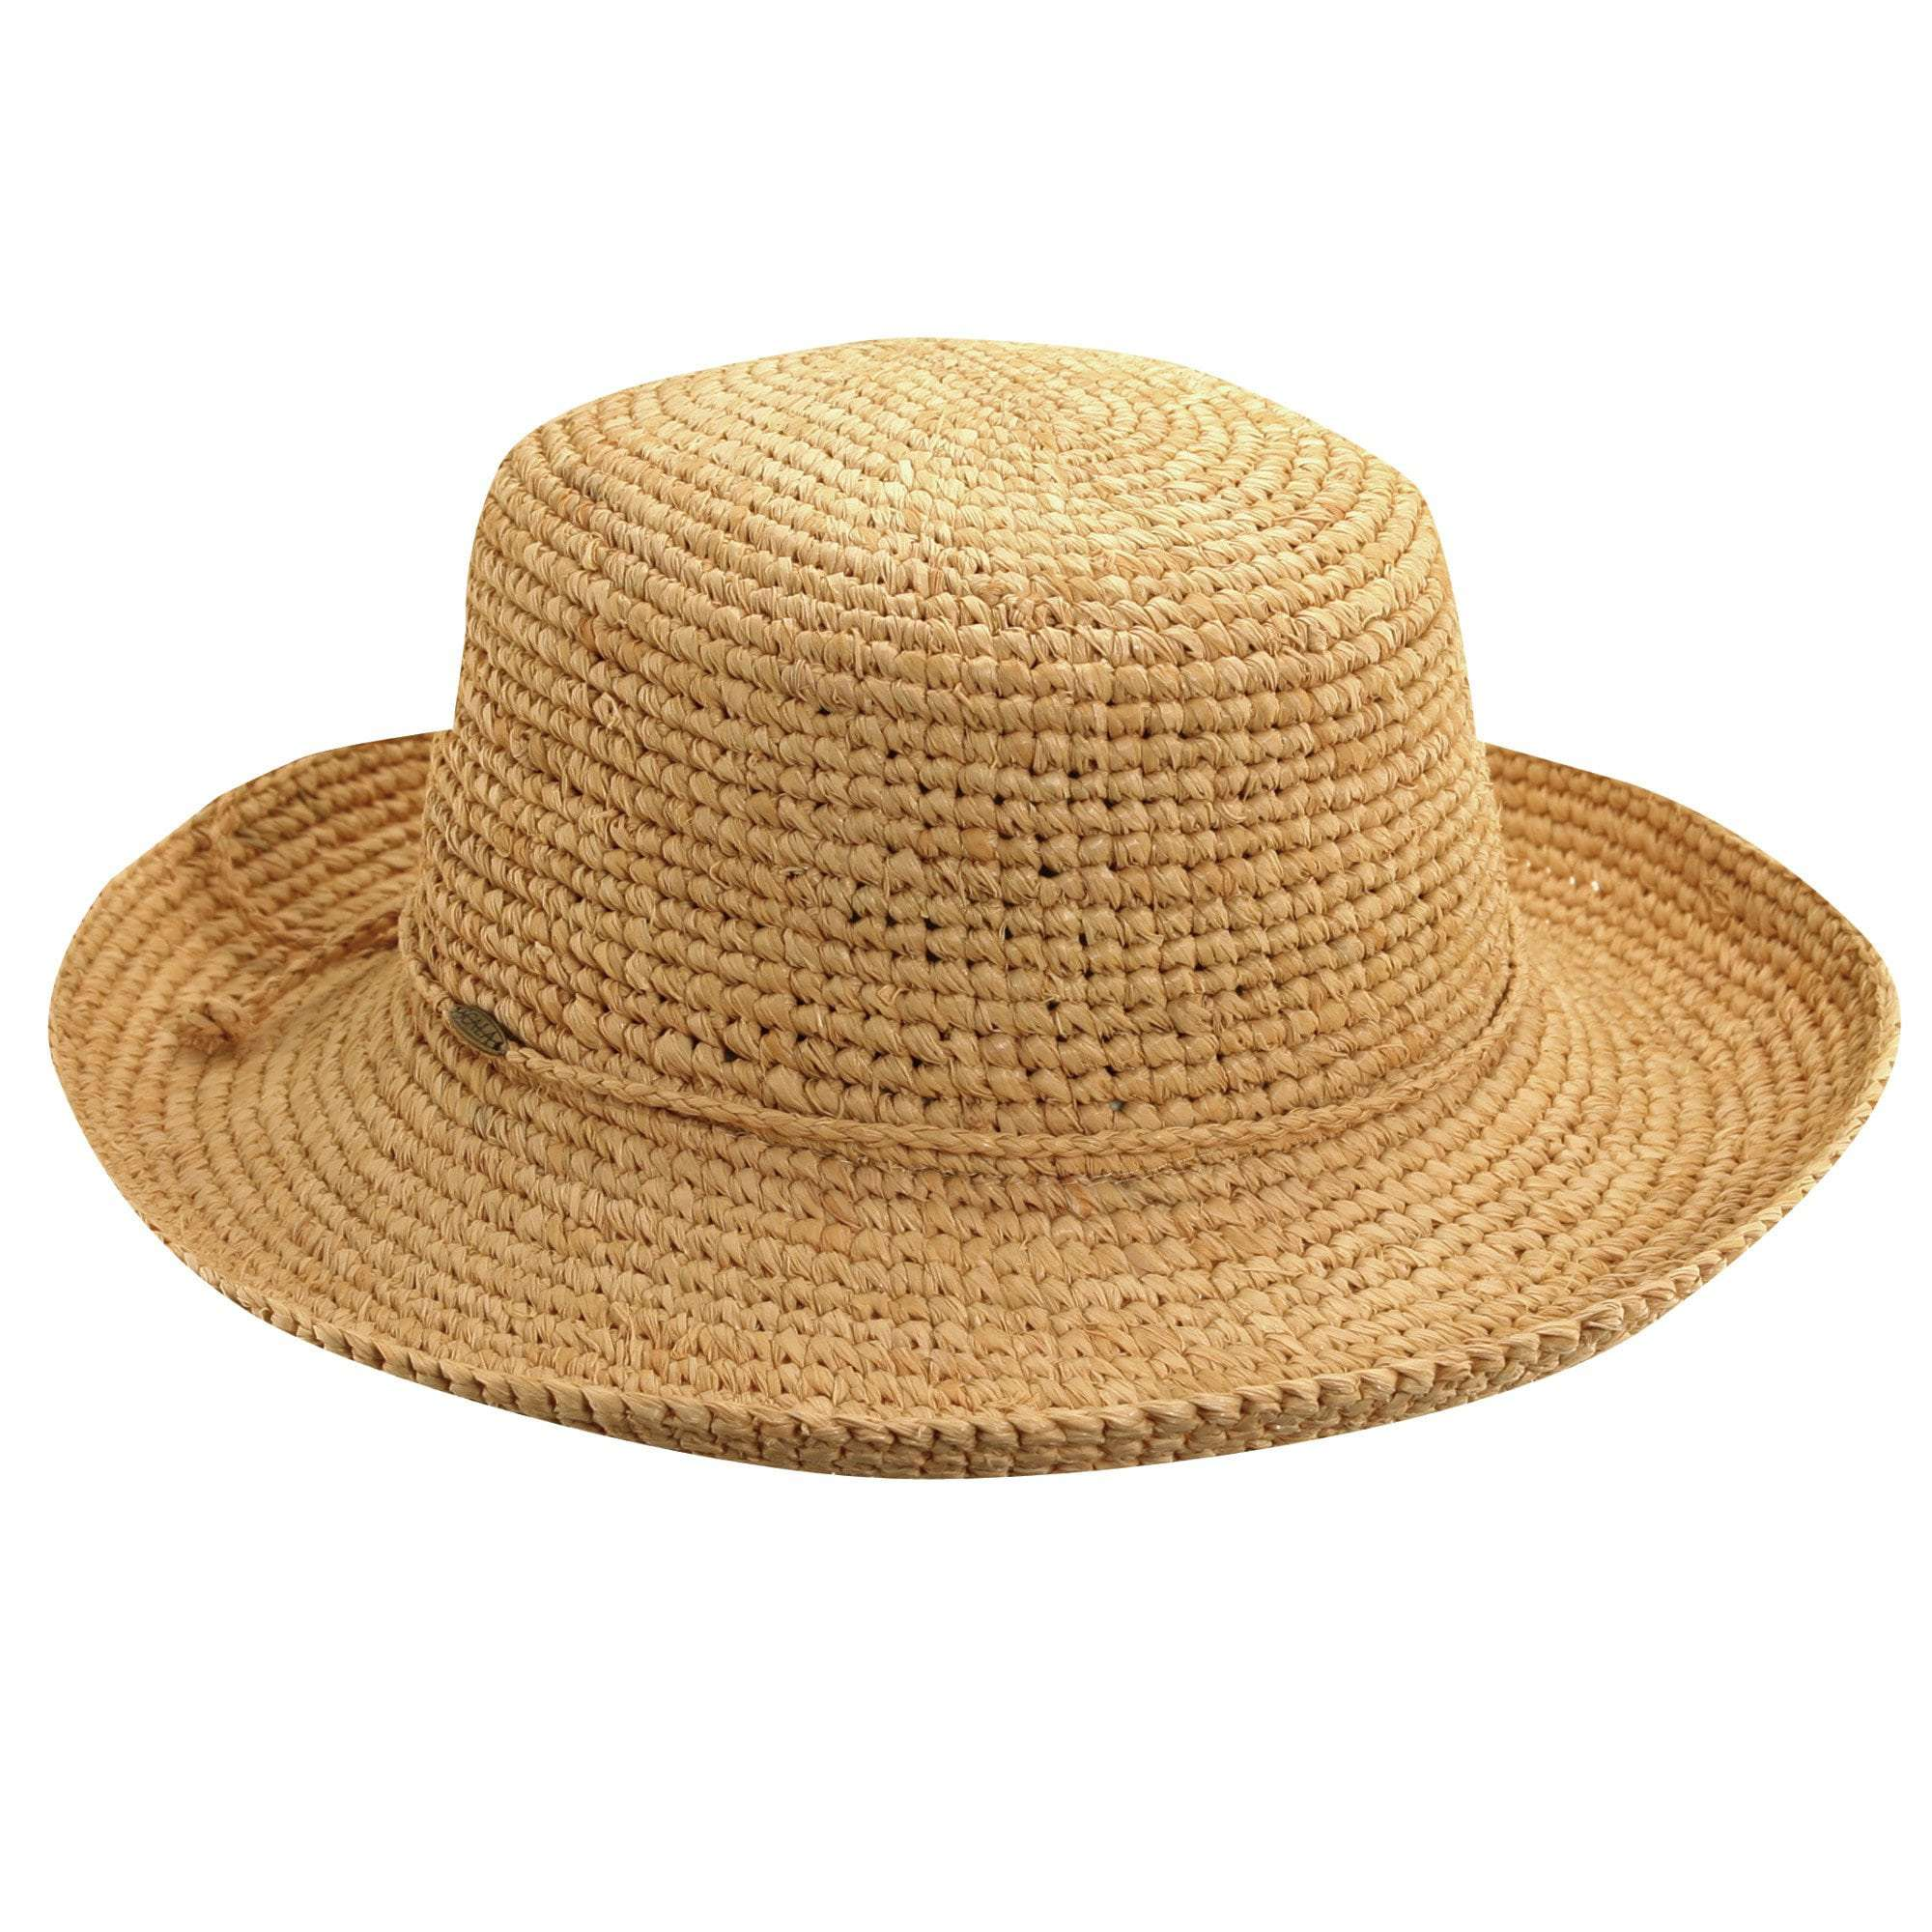 0e8c5ae922b SetarTrading Hats and Accessories - Shop Men s and Women s Hats Online